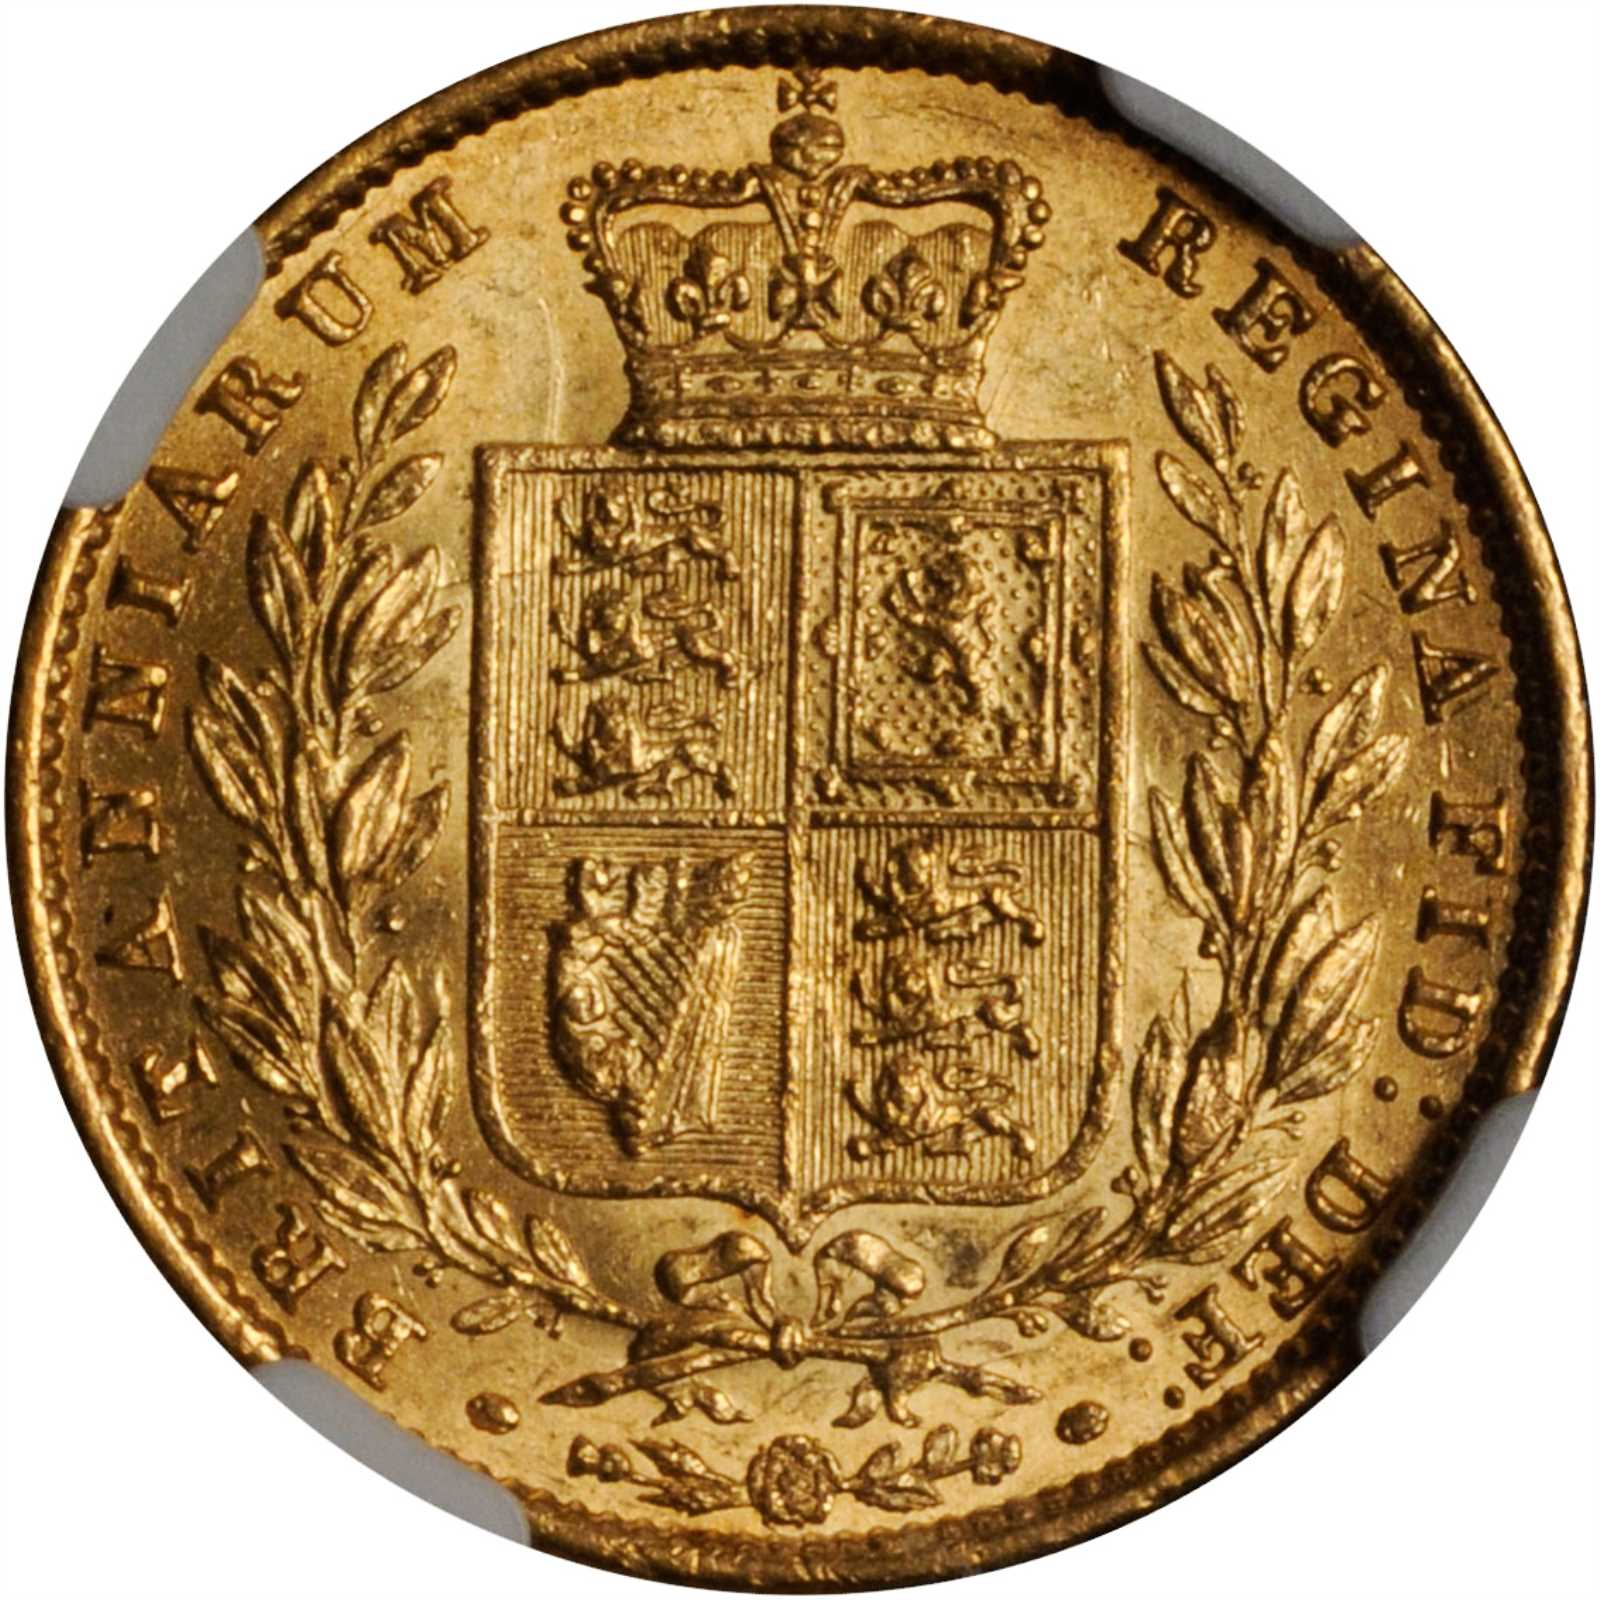 Sovereign 1857: Photo Great Britain 1857 sovereign